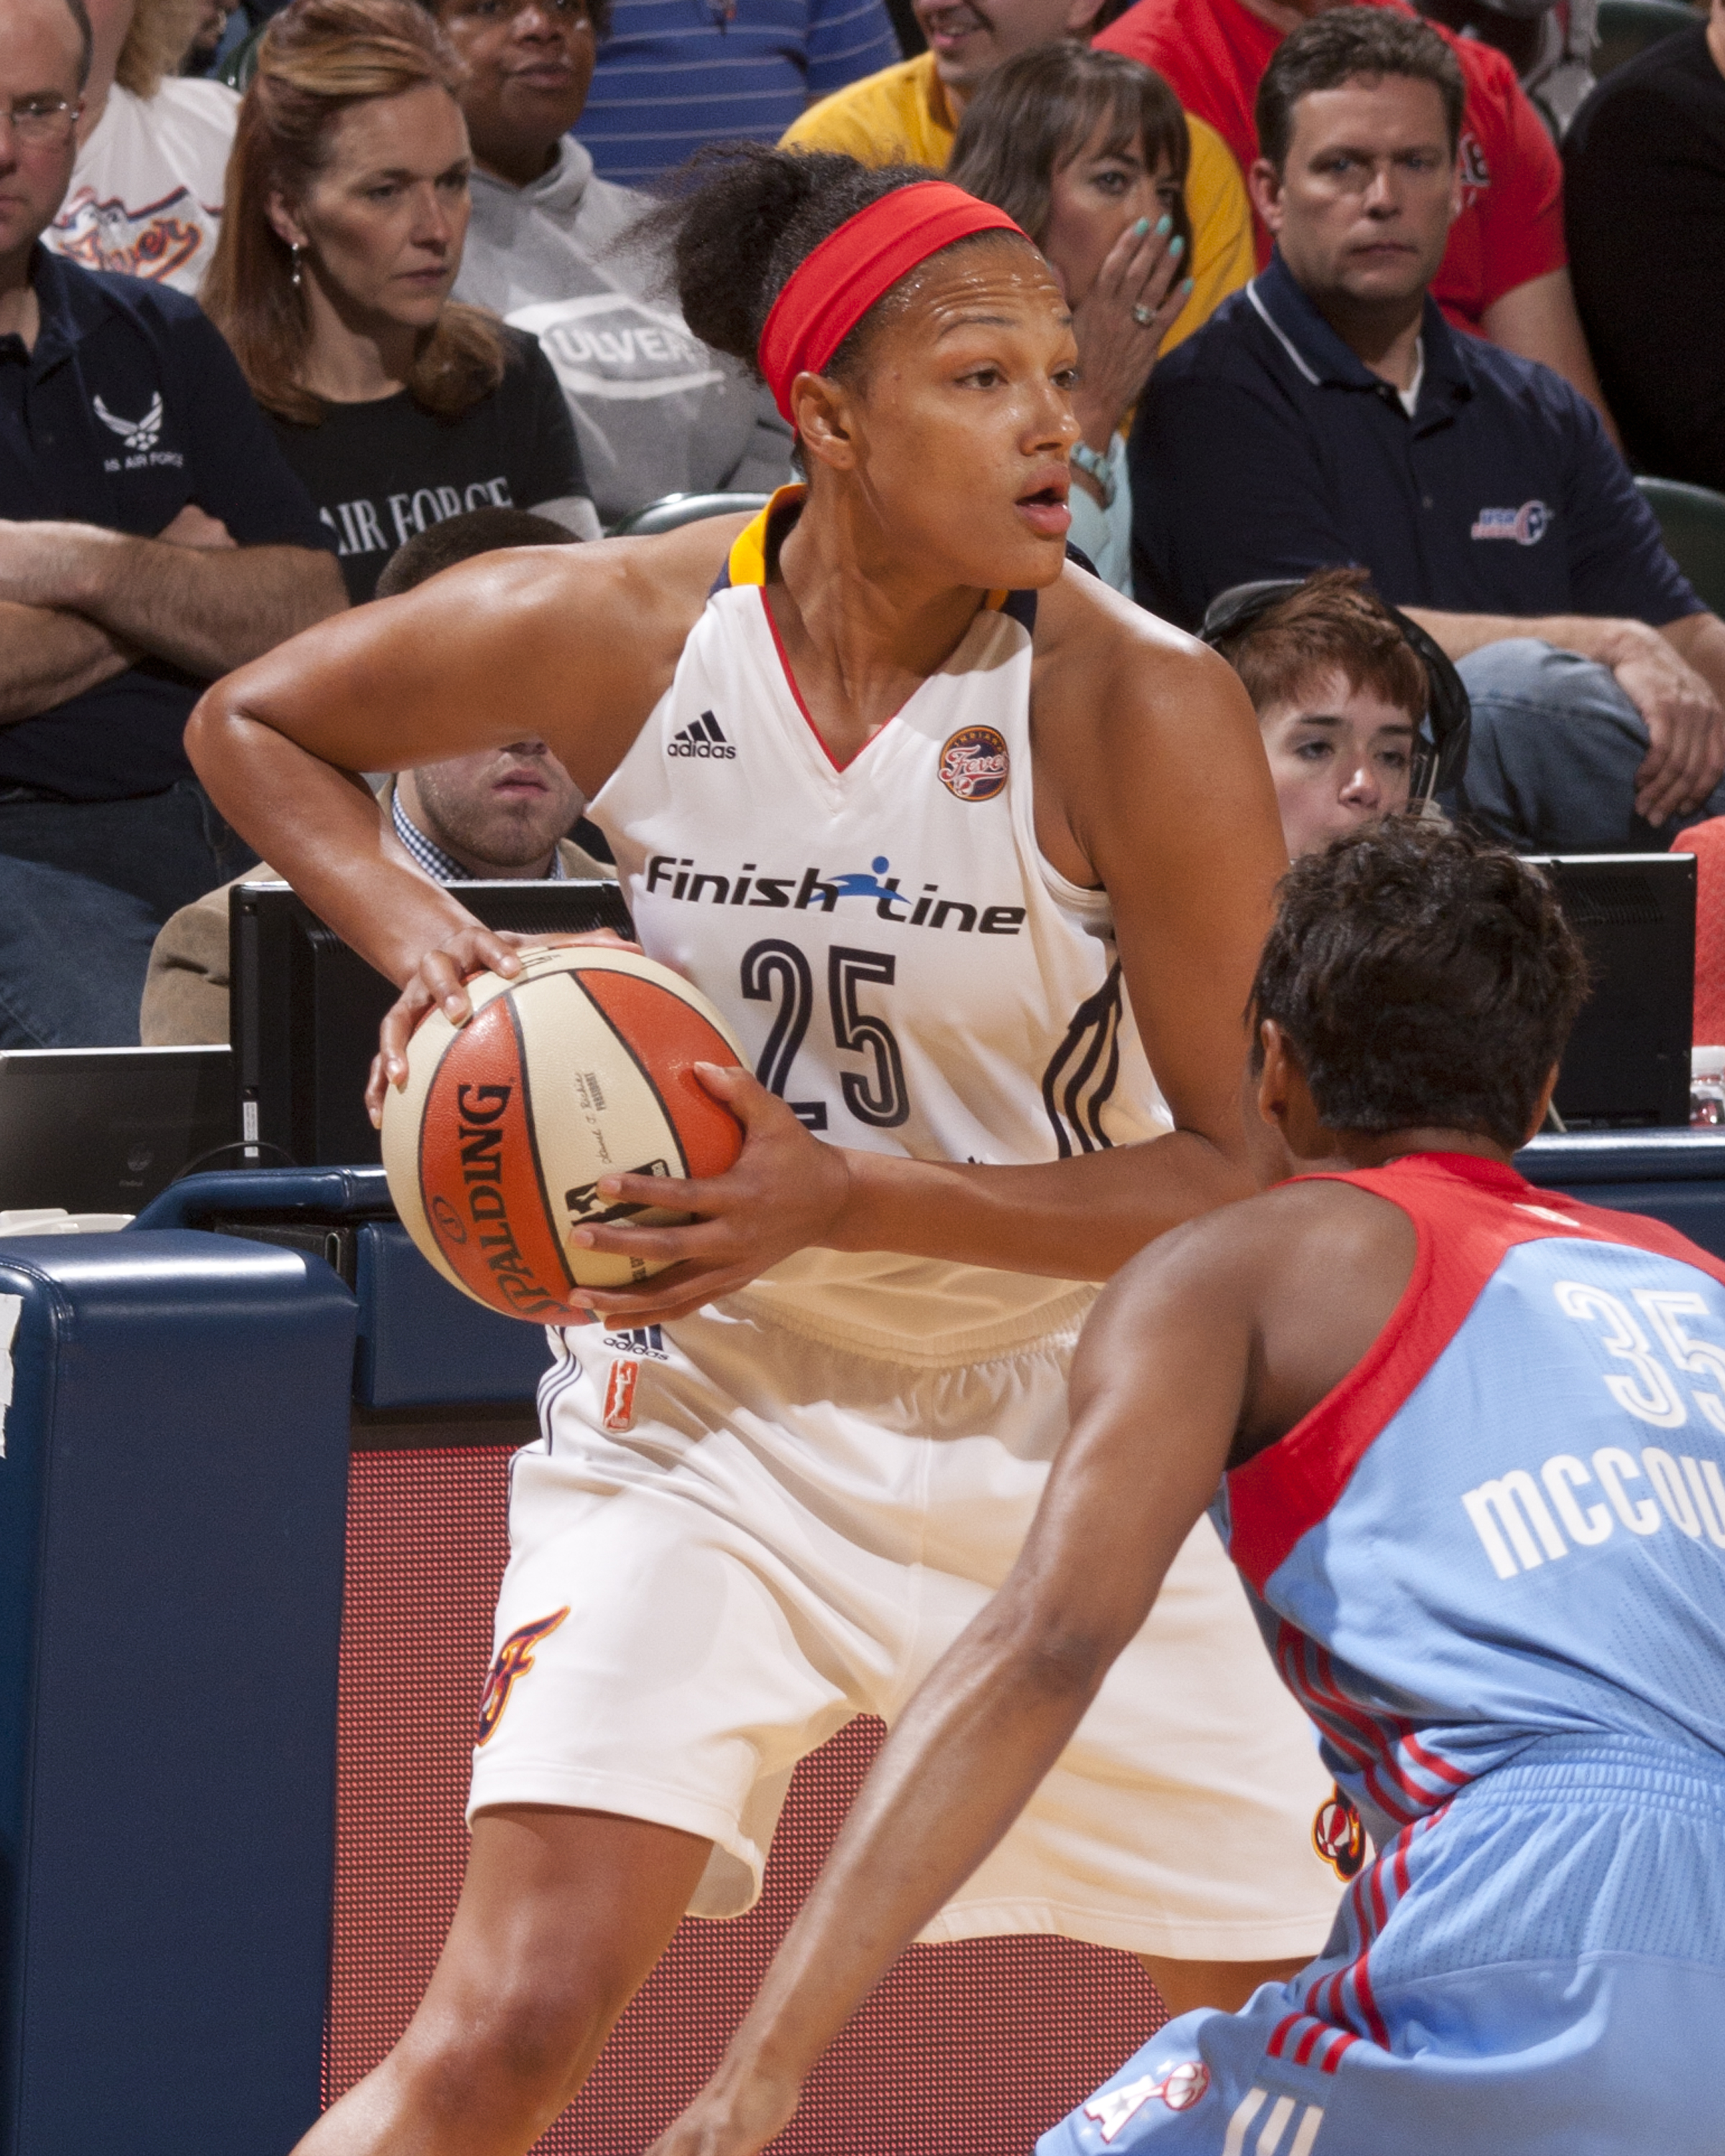 Seattle Falls to Fever 88-65 in Indiana